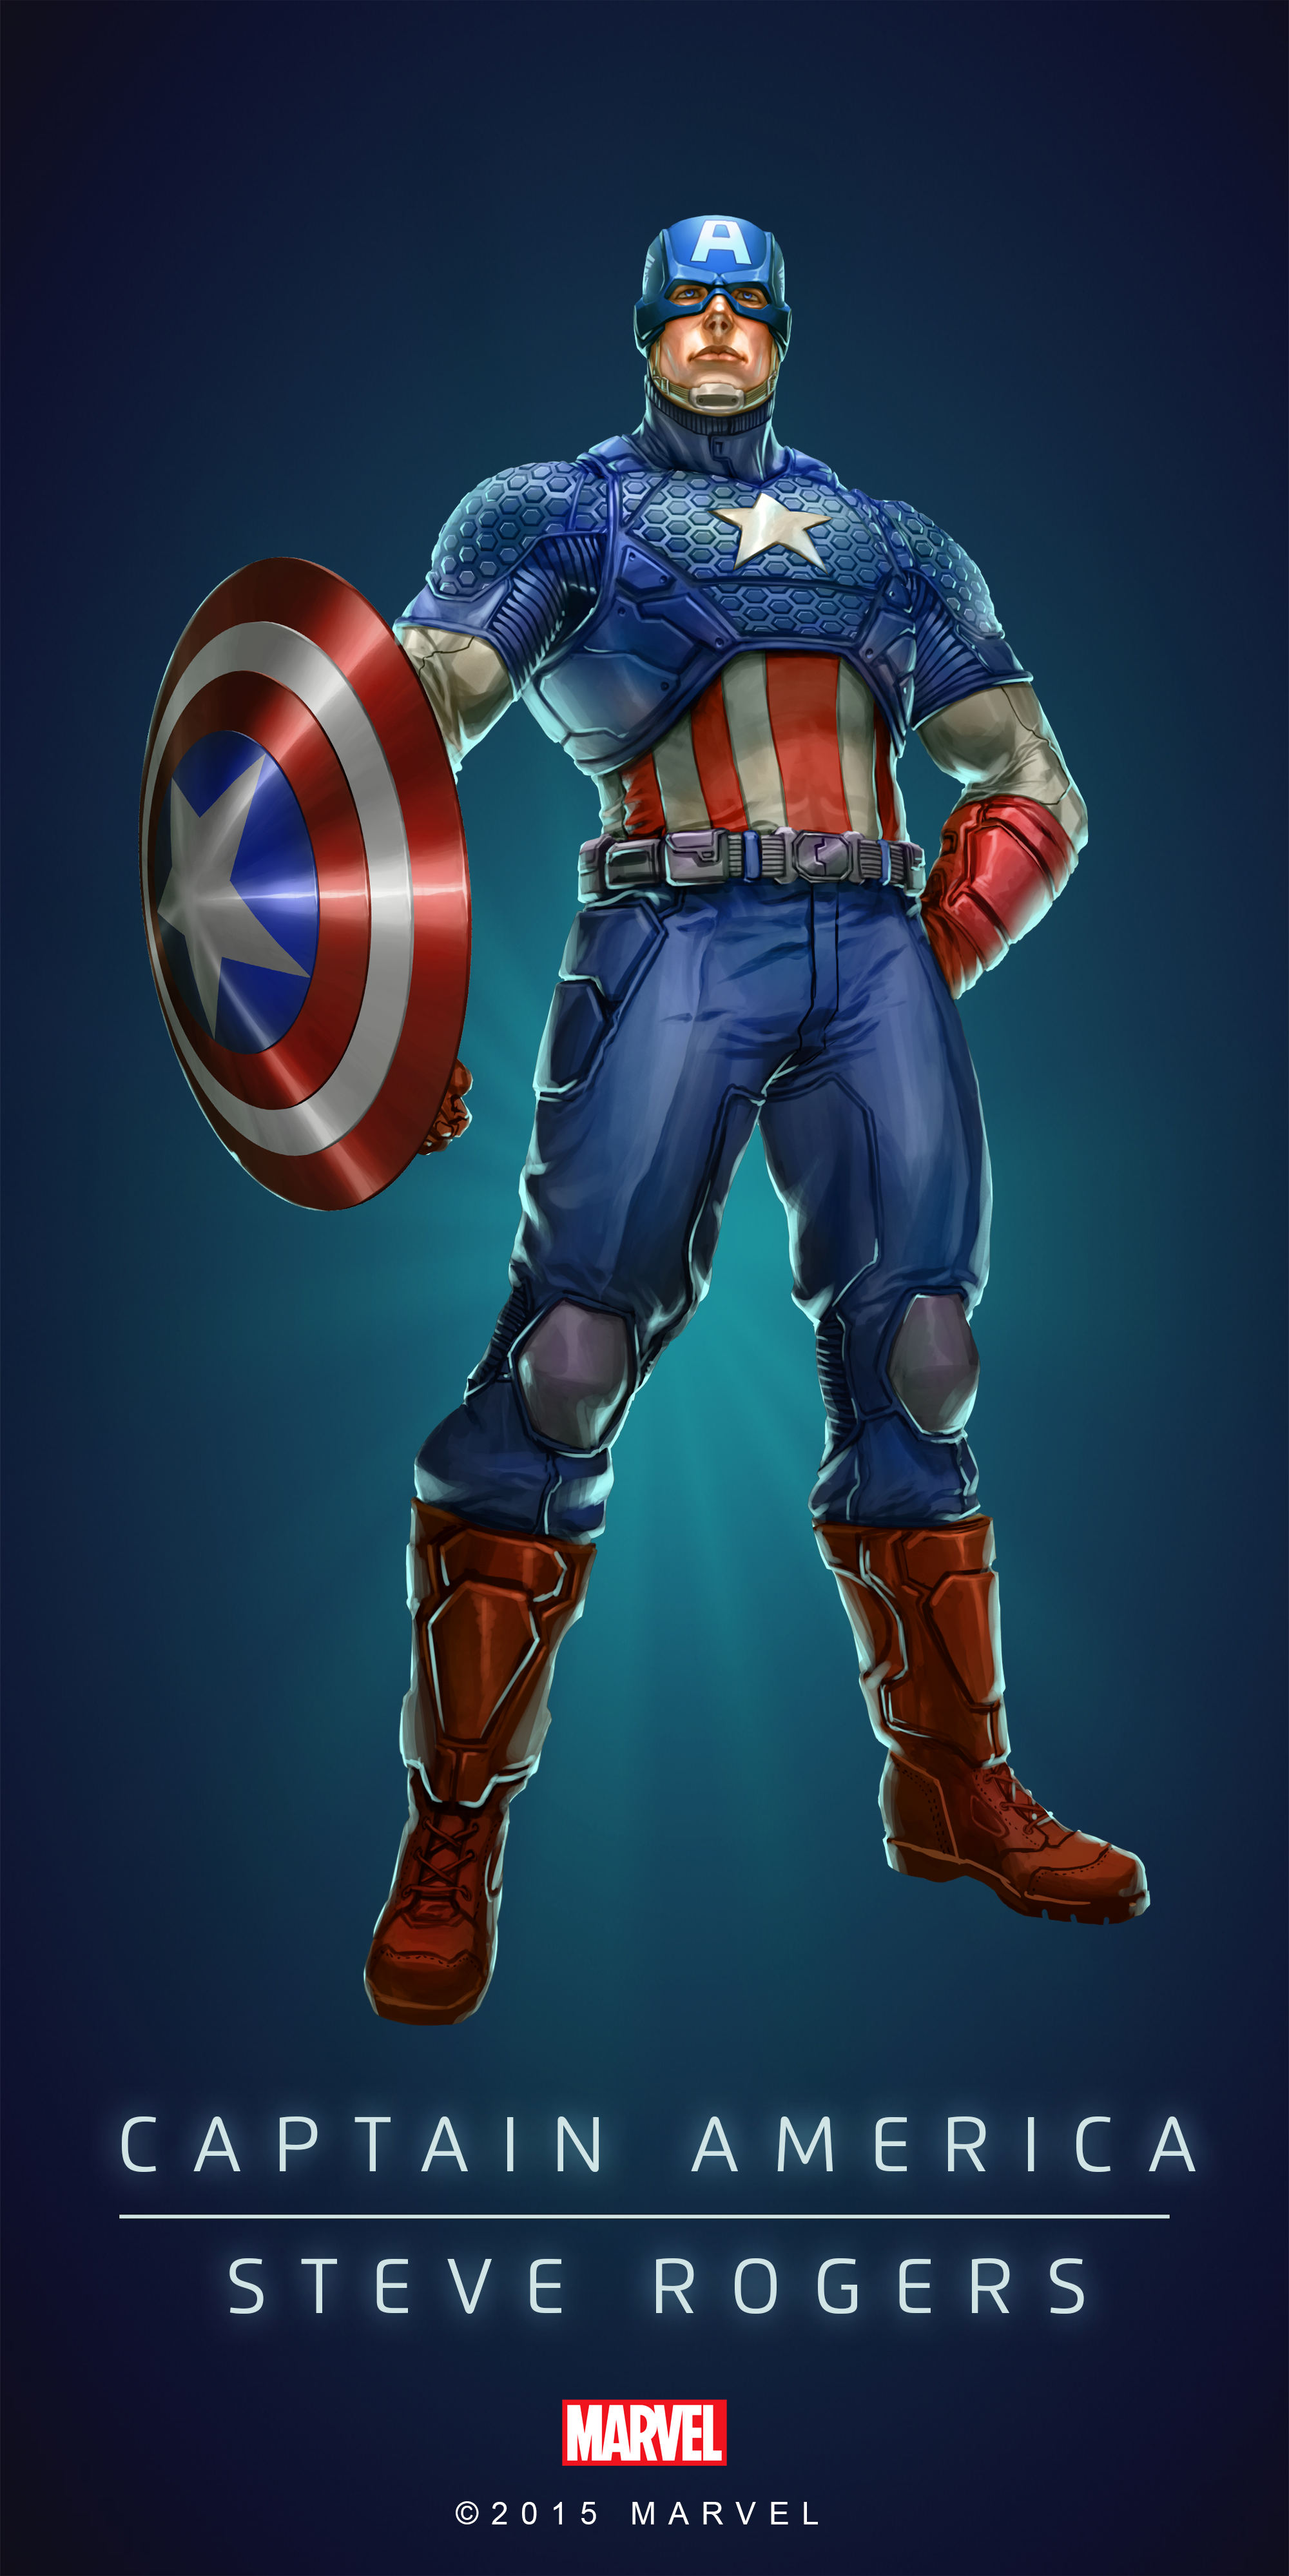 captain america fan art captain america steve rogers in marvel 39 s puzzle quest by. Black Bedroom Furniture Sets. Home Design Ideas